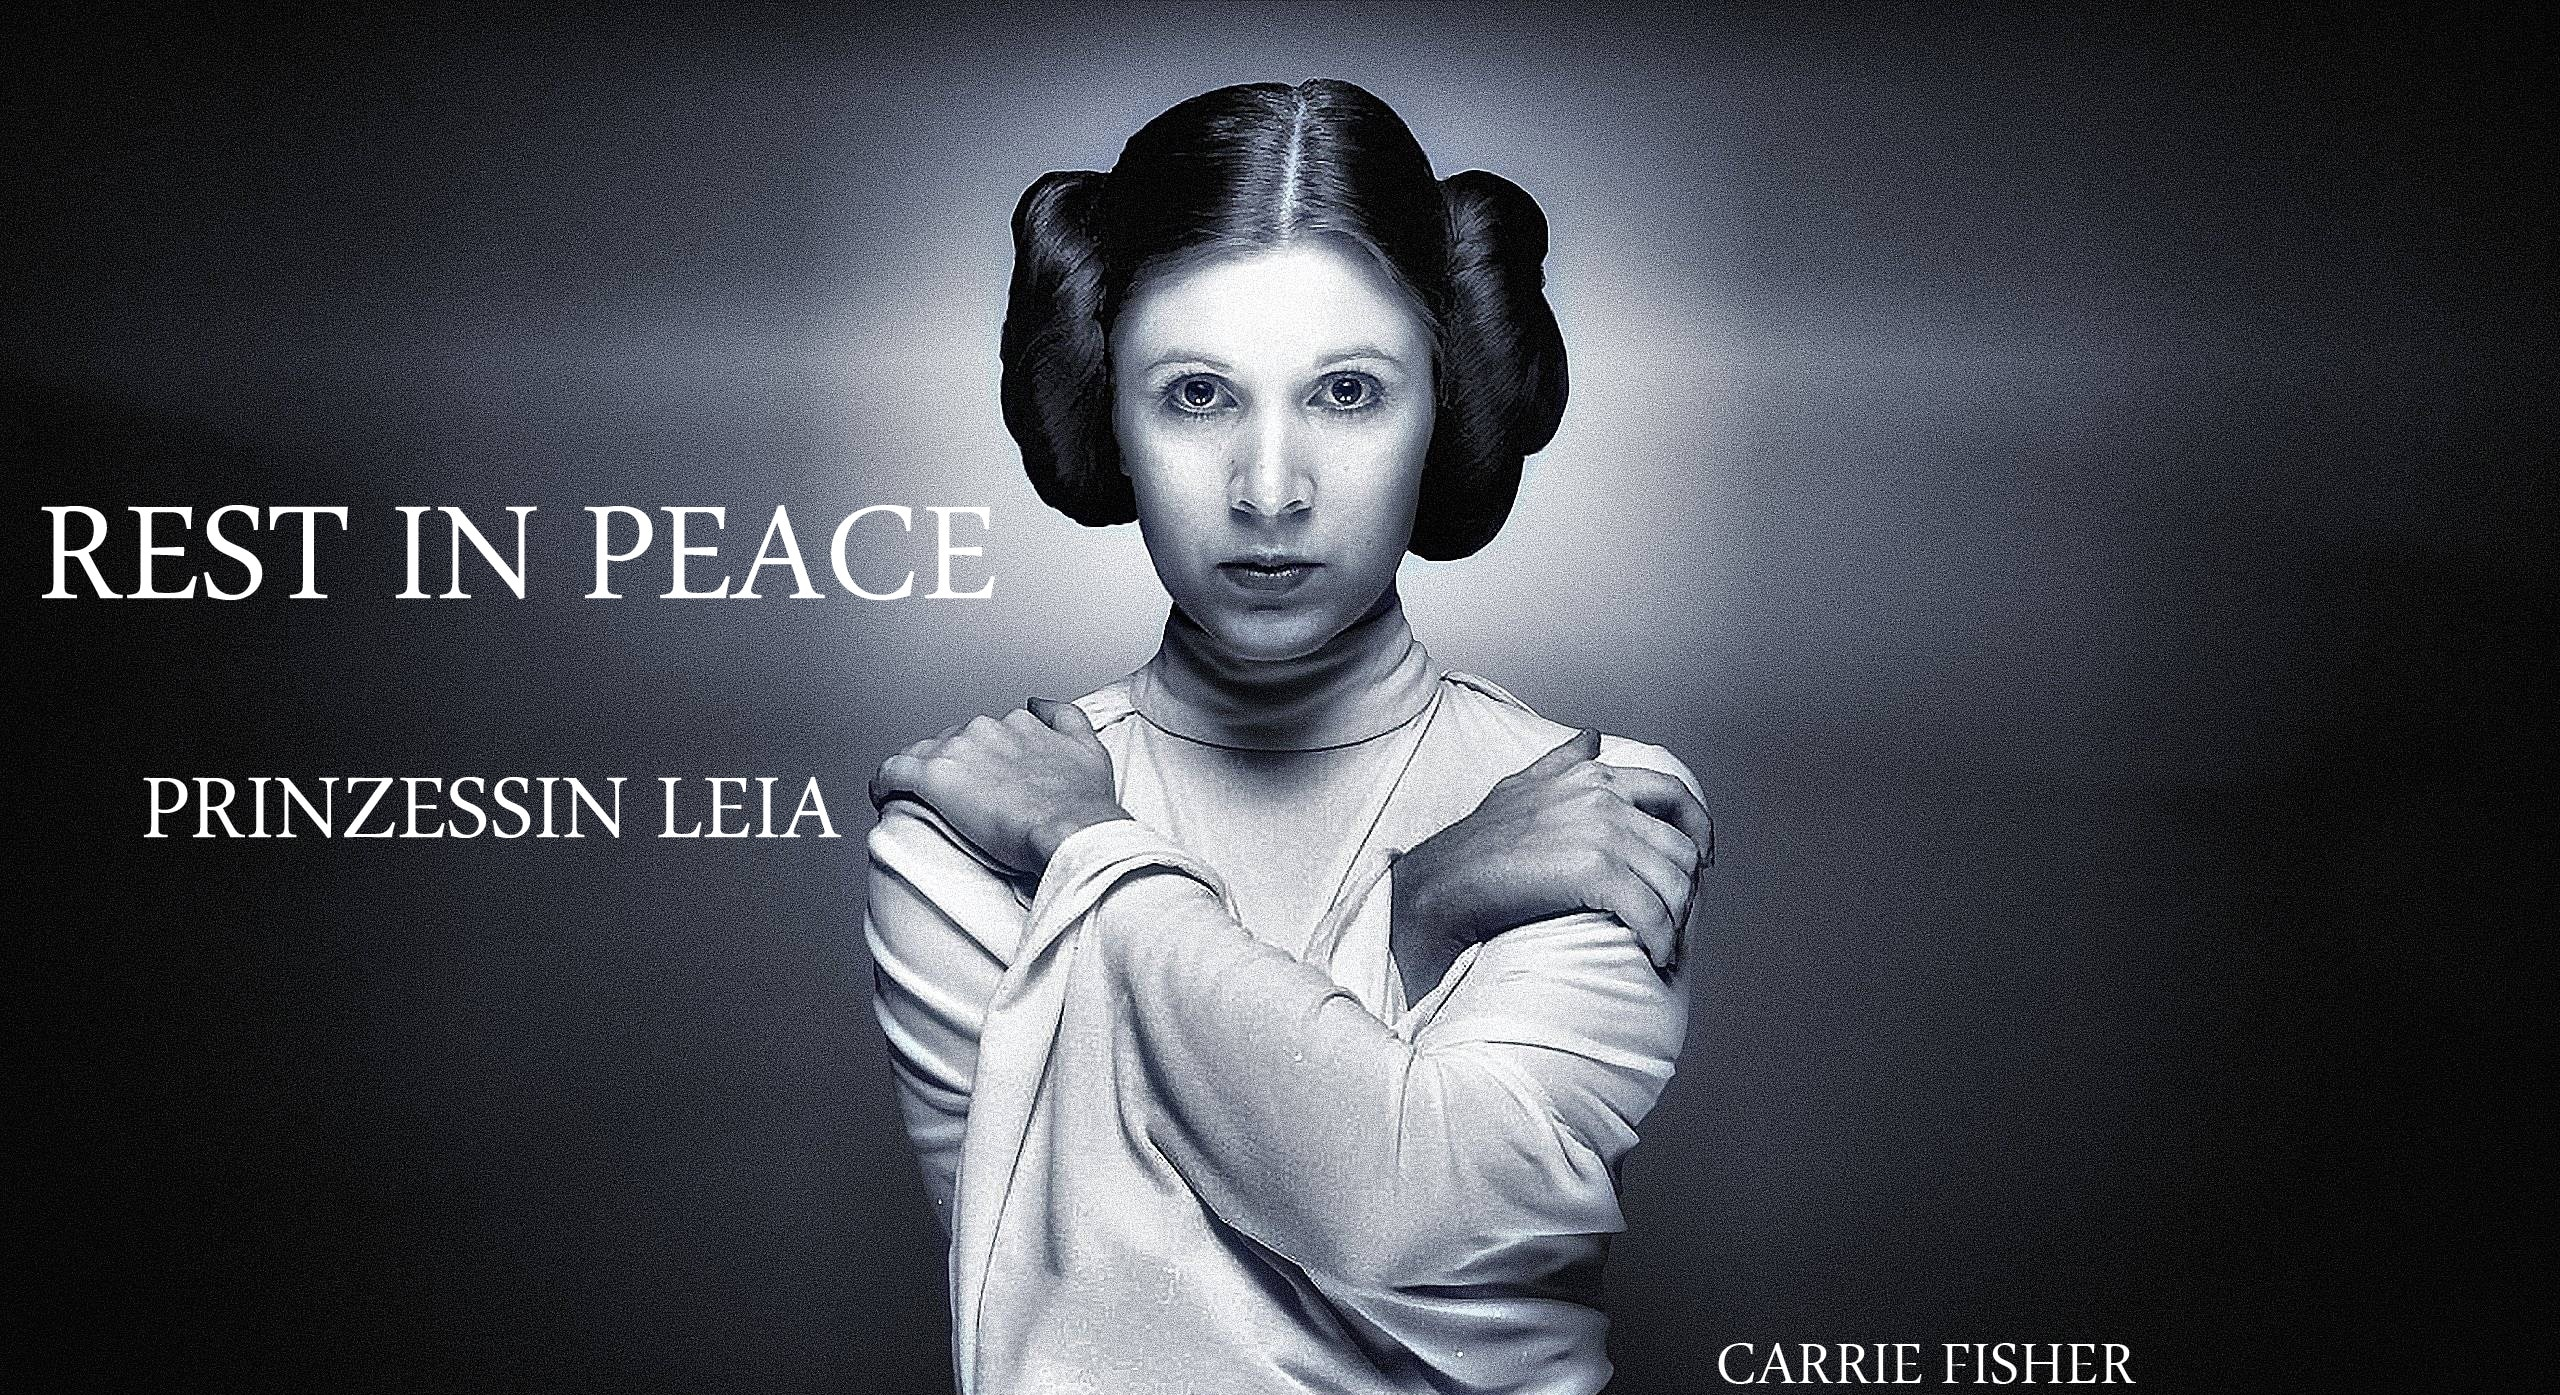 RIP Prinzessin Leia - Carrie Fisher